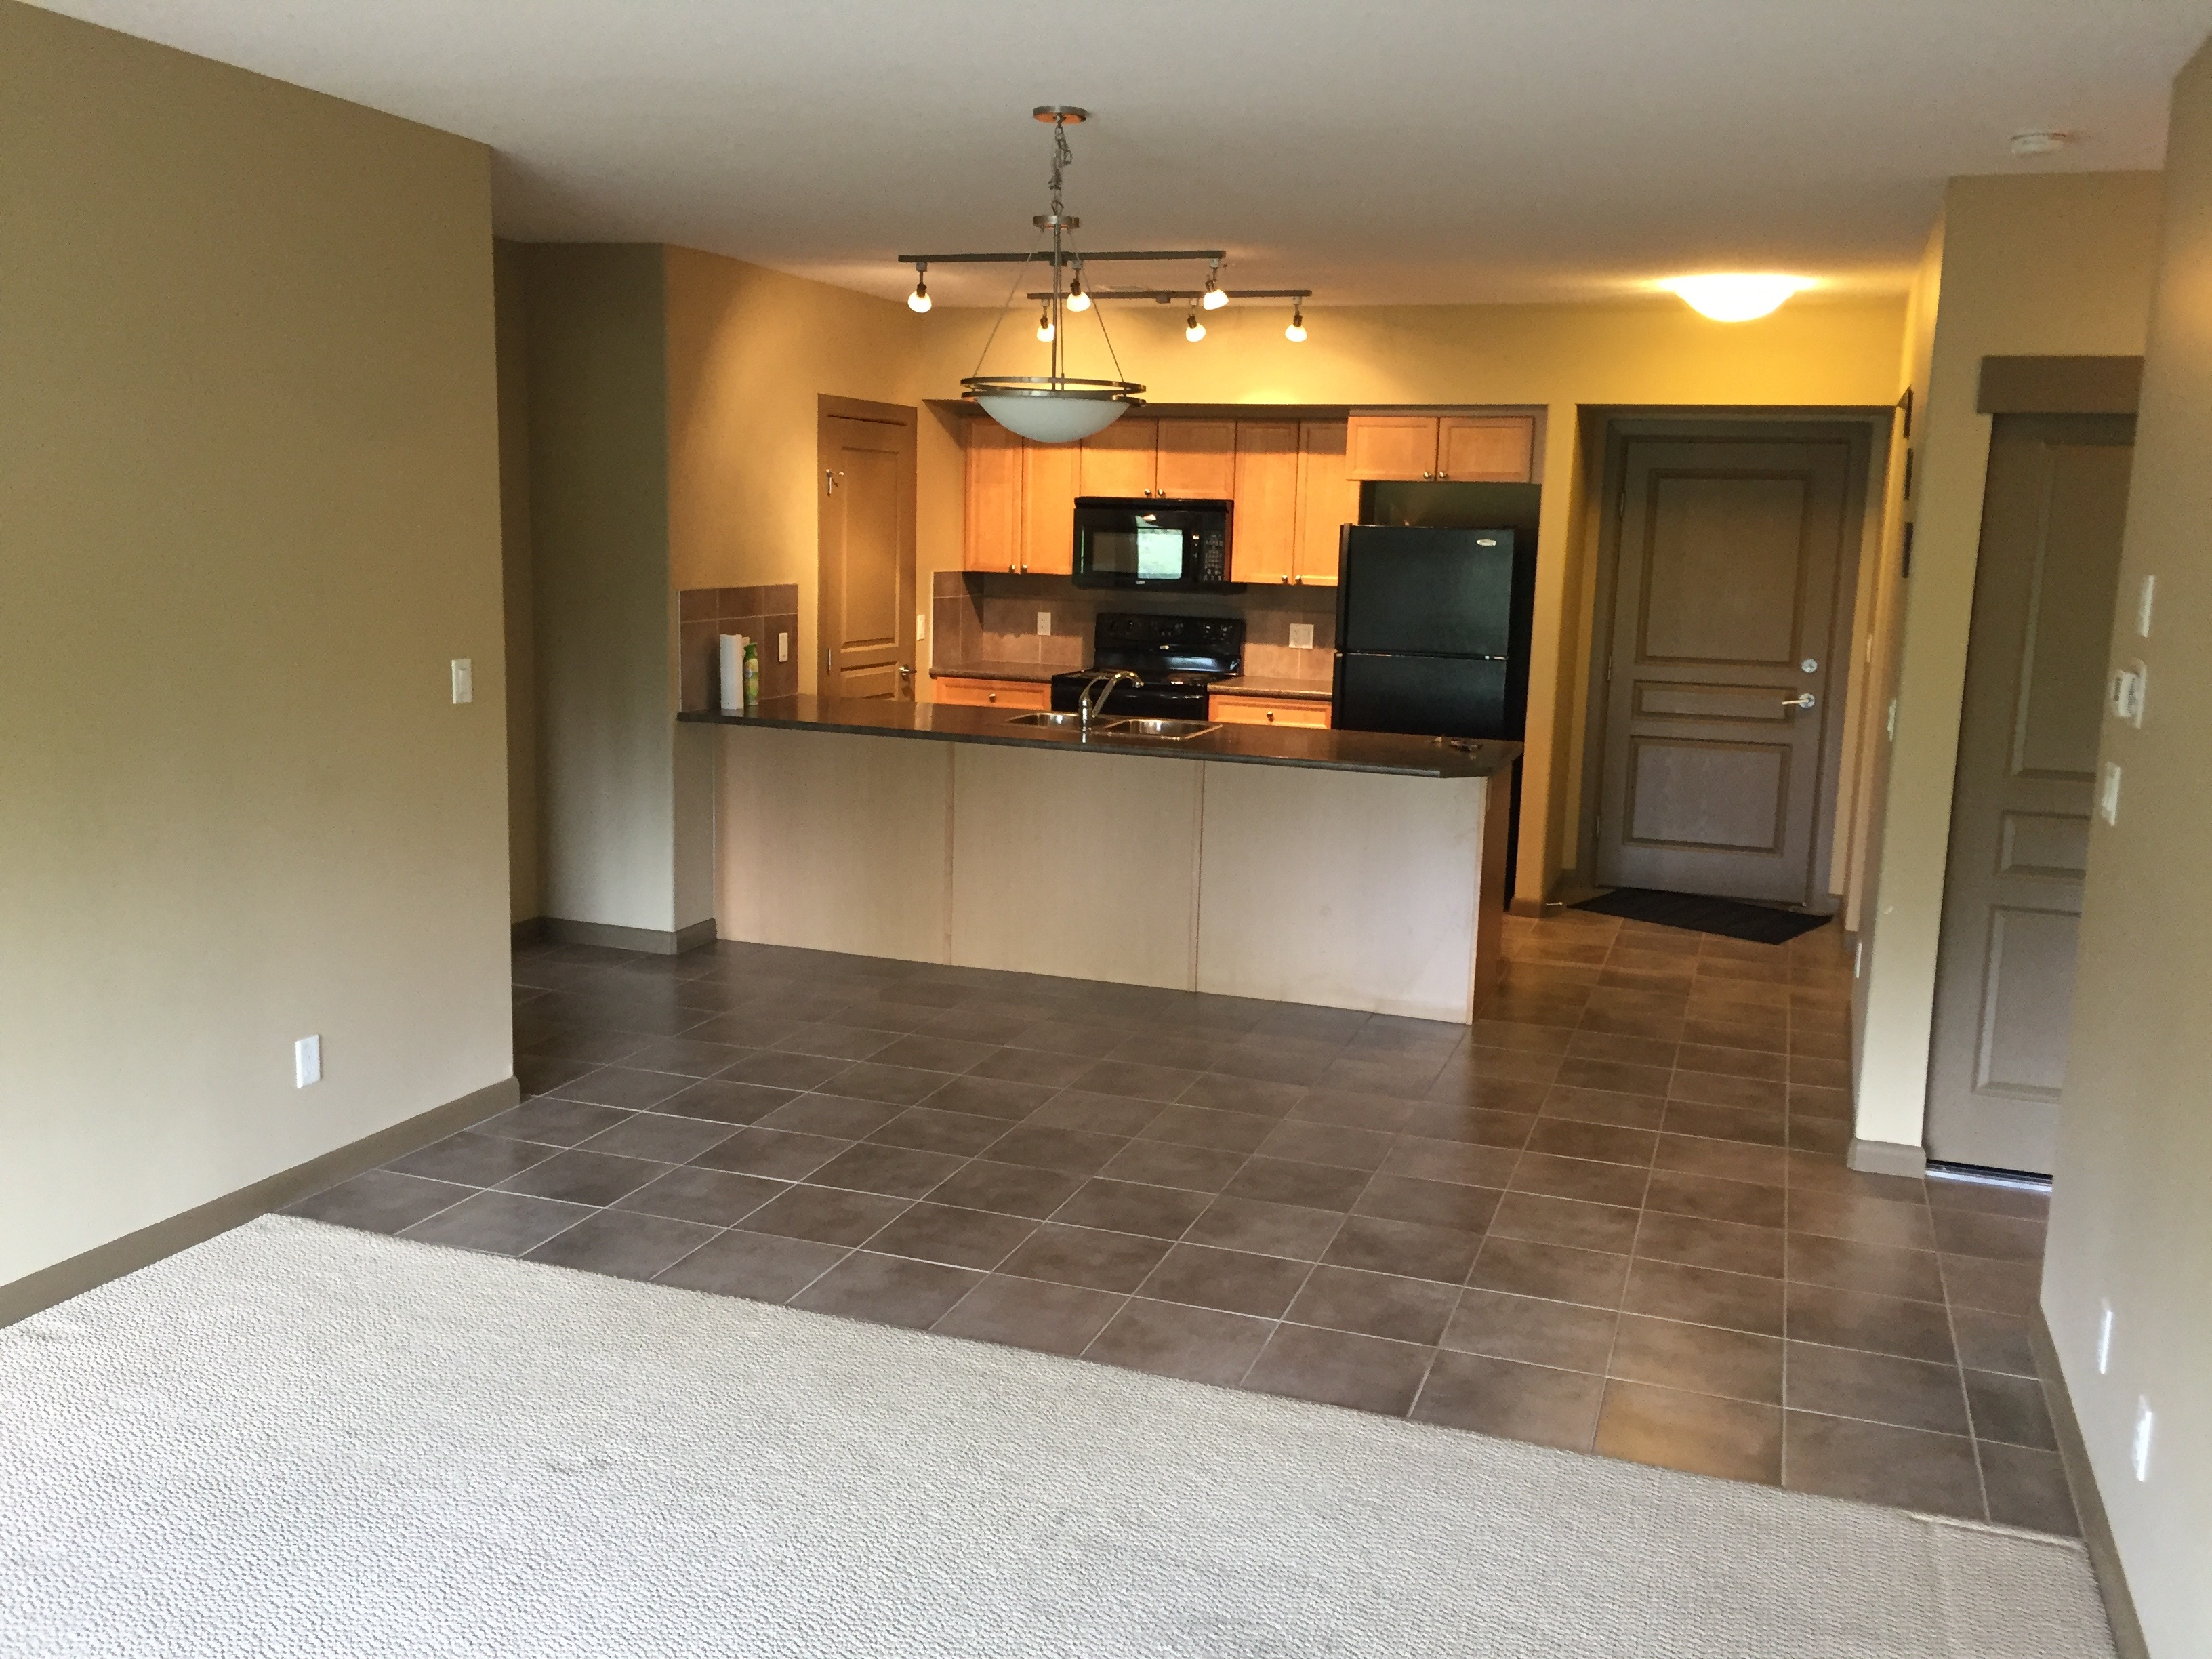 2 bedroom 2 bath + den Condo, Sherwood Park